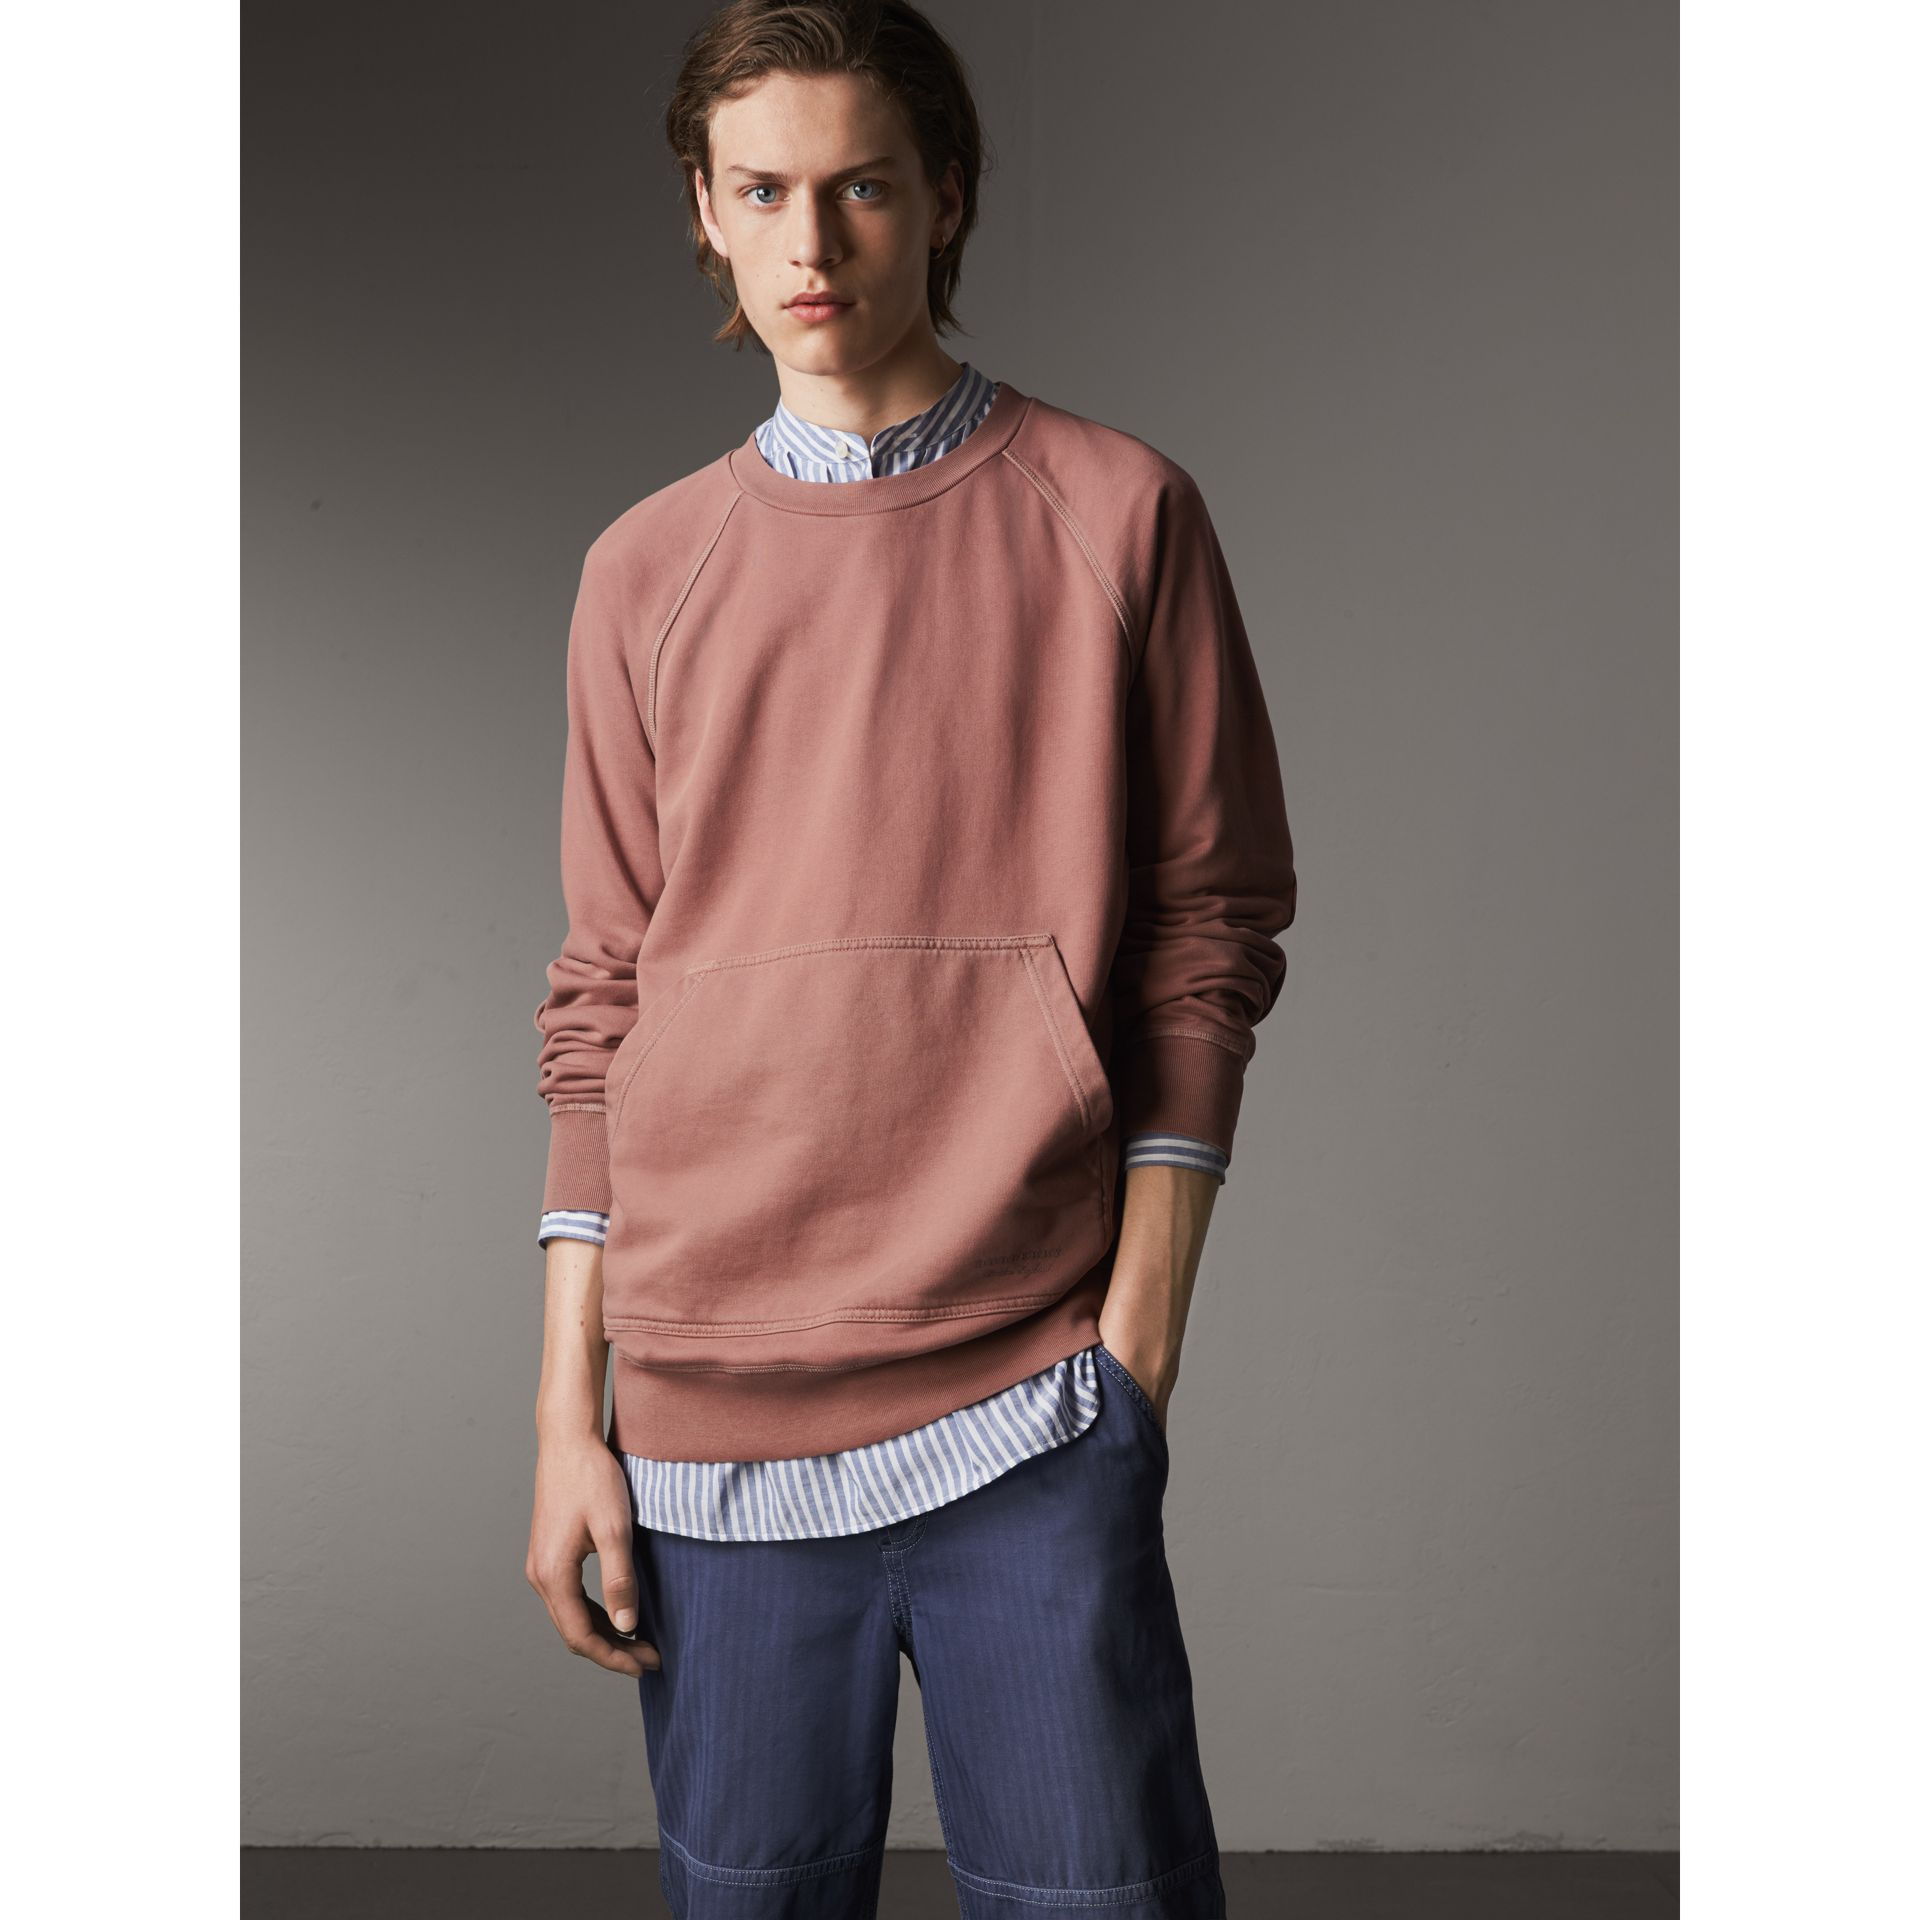 Unisex Pigment-dyed Cotton Oversize Sweatshirt in Dusty Mauve - Men | Burberry Canada - gallery image 1